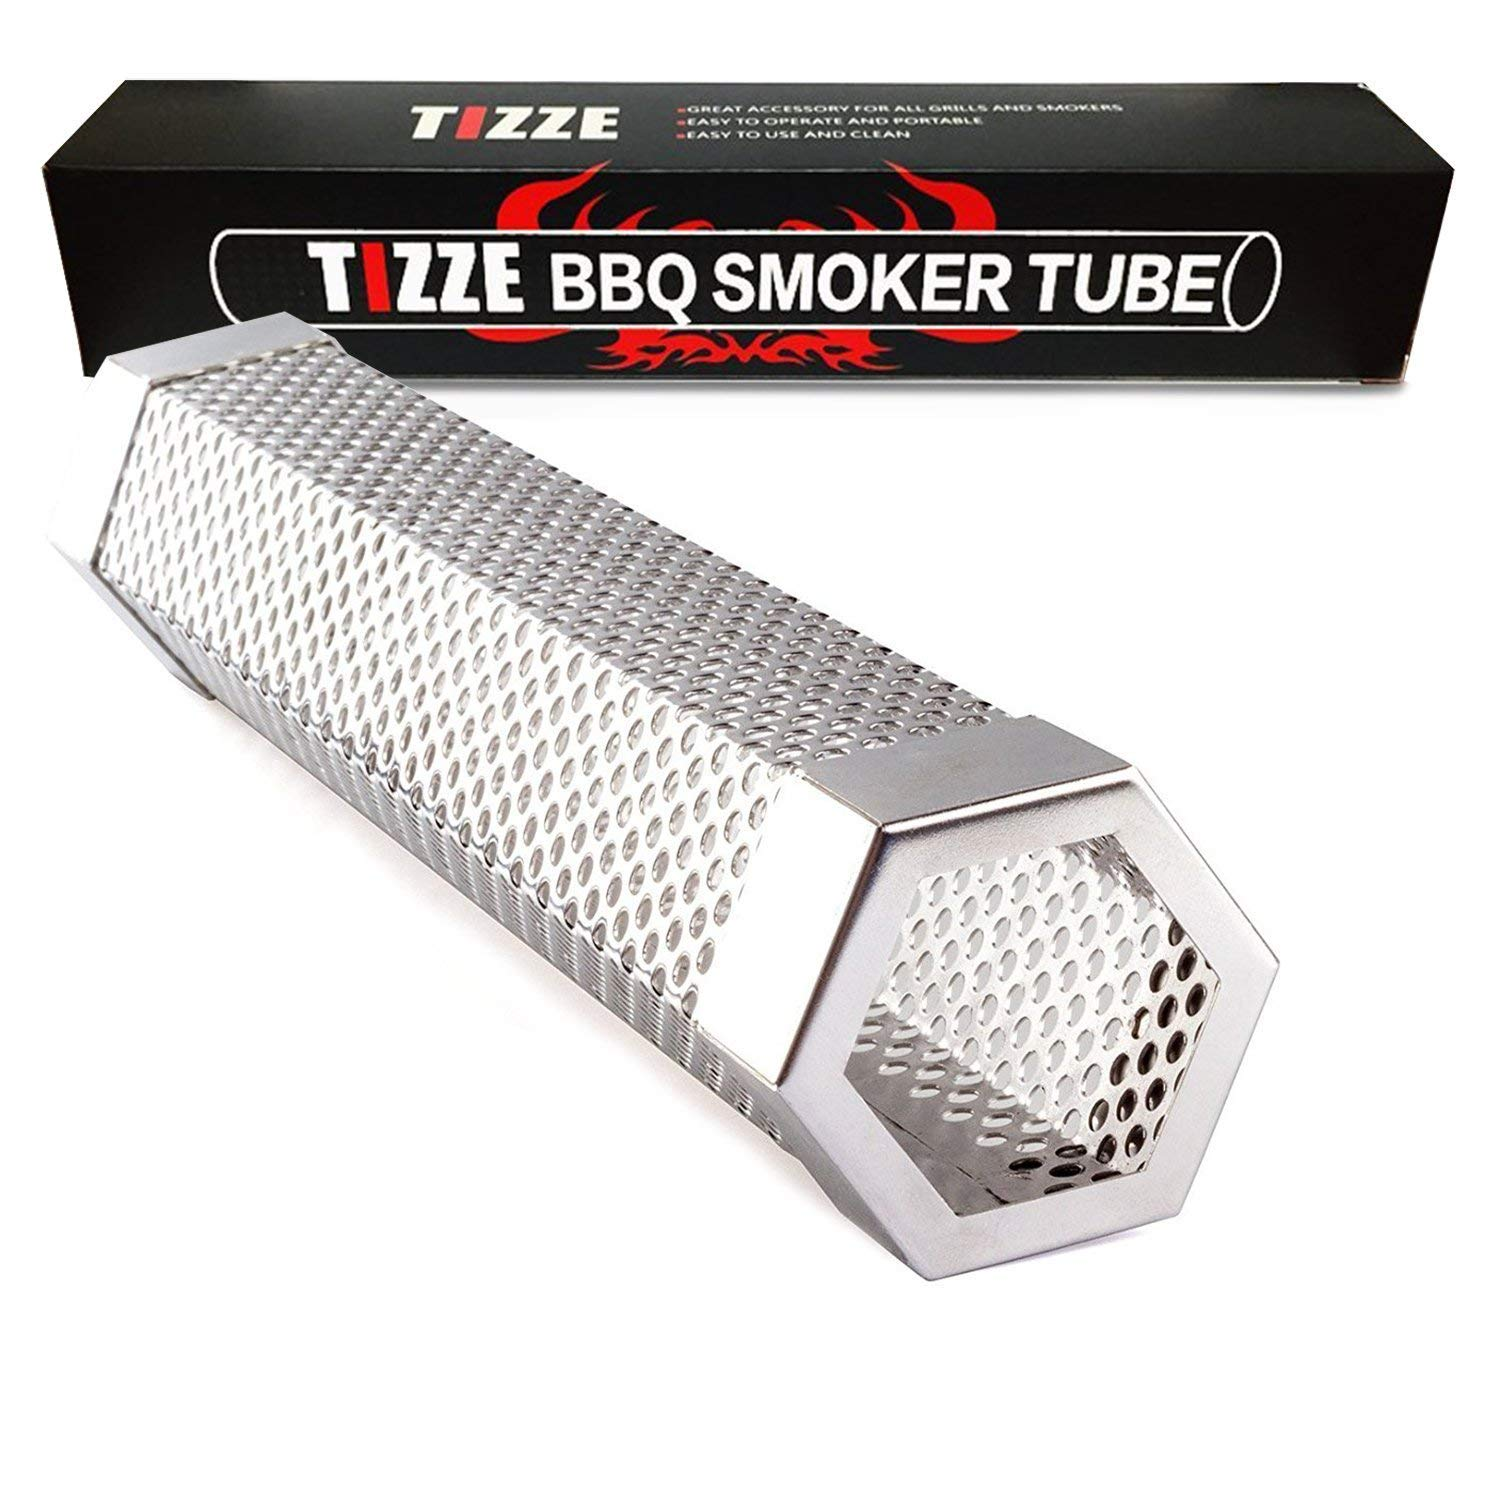 TIZZE Pellet Smoker Tube 12'' Perforated BBQ Smoke Generator to Add Smoke Flavor to All Grilled Foods by TIZZE